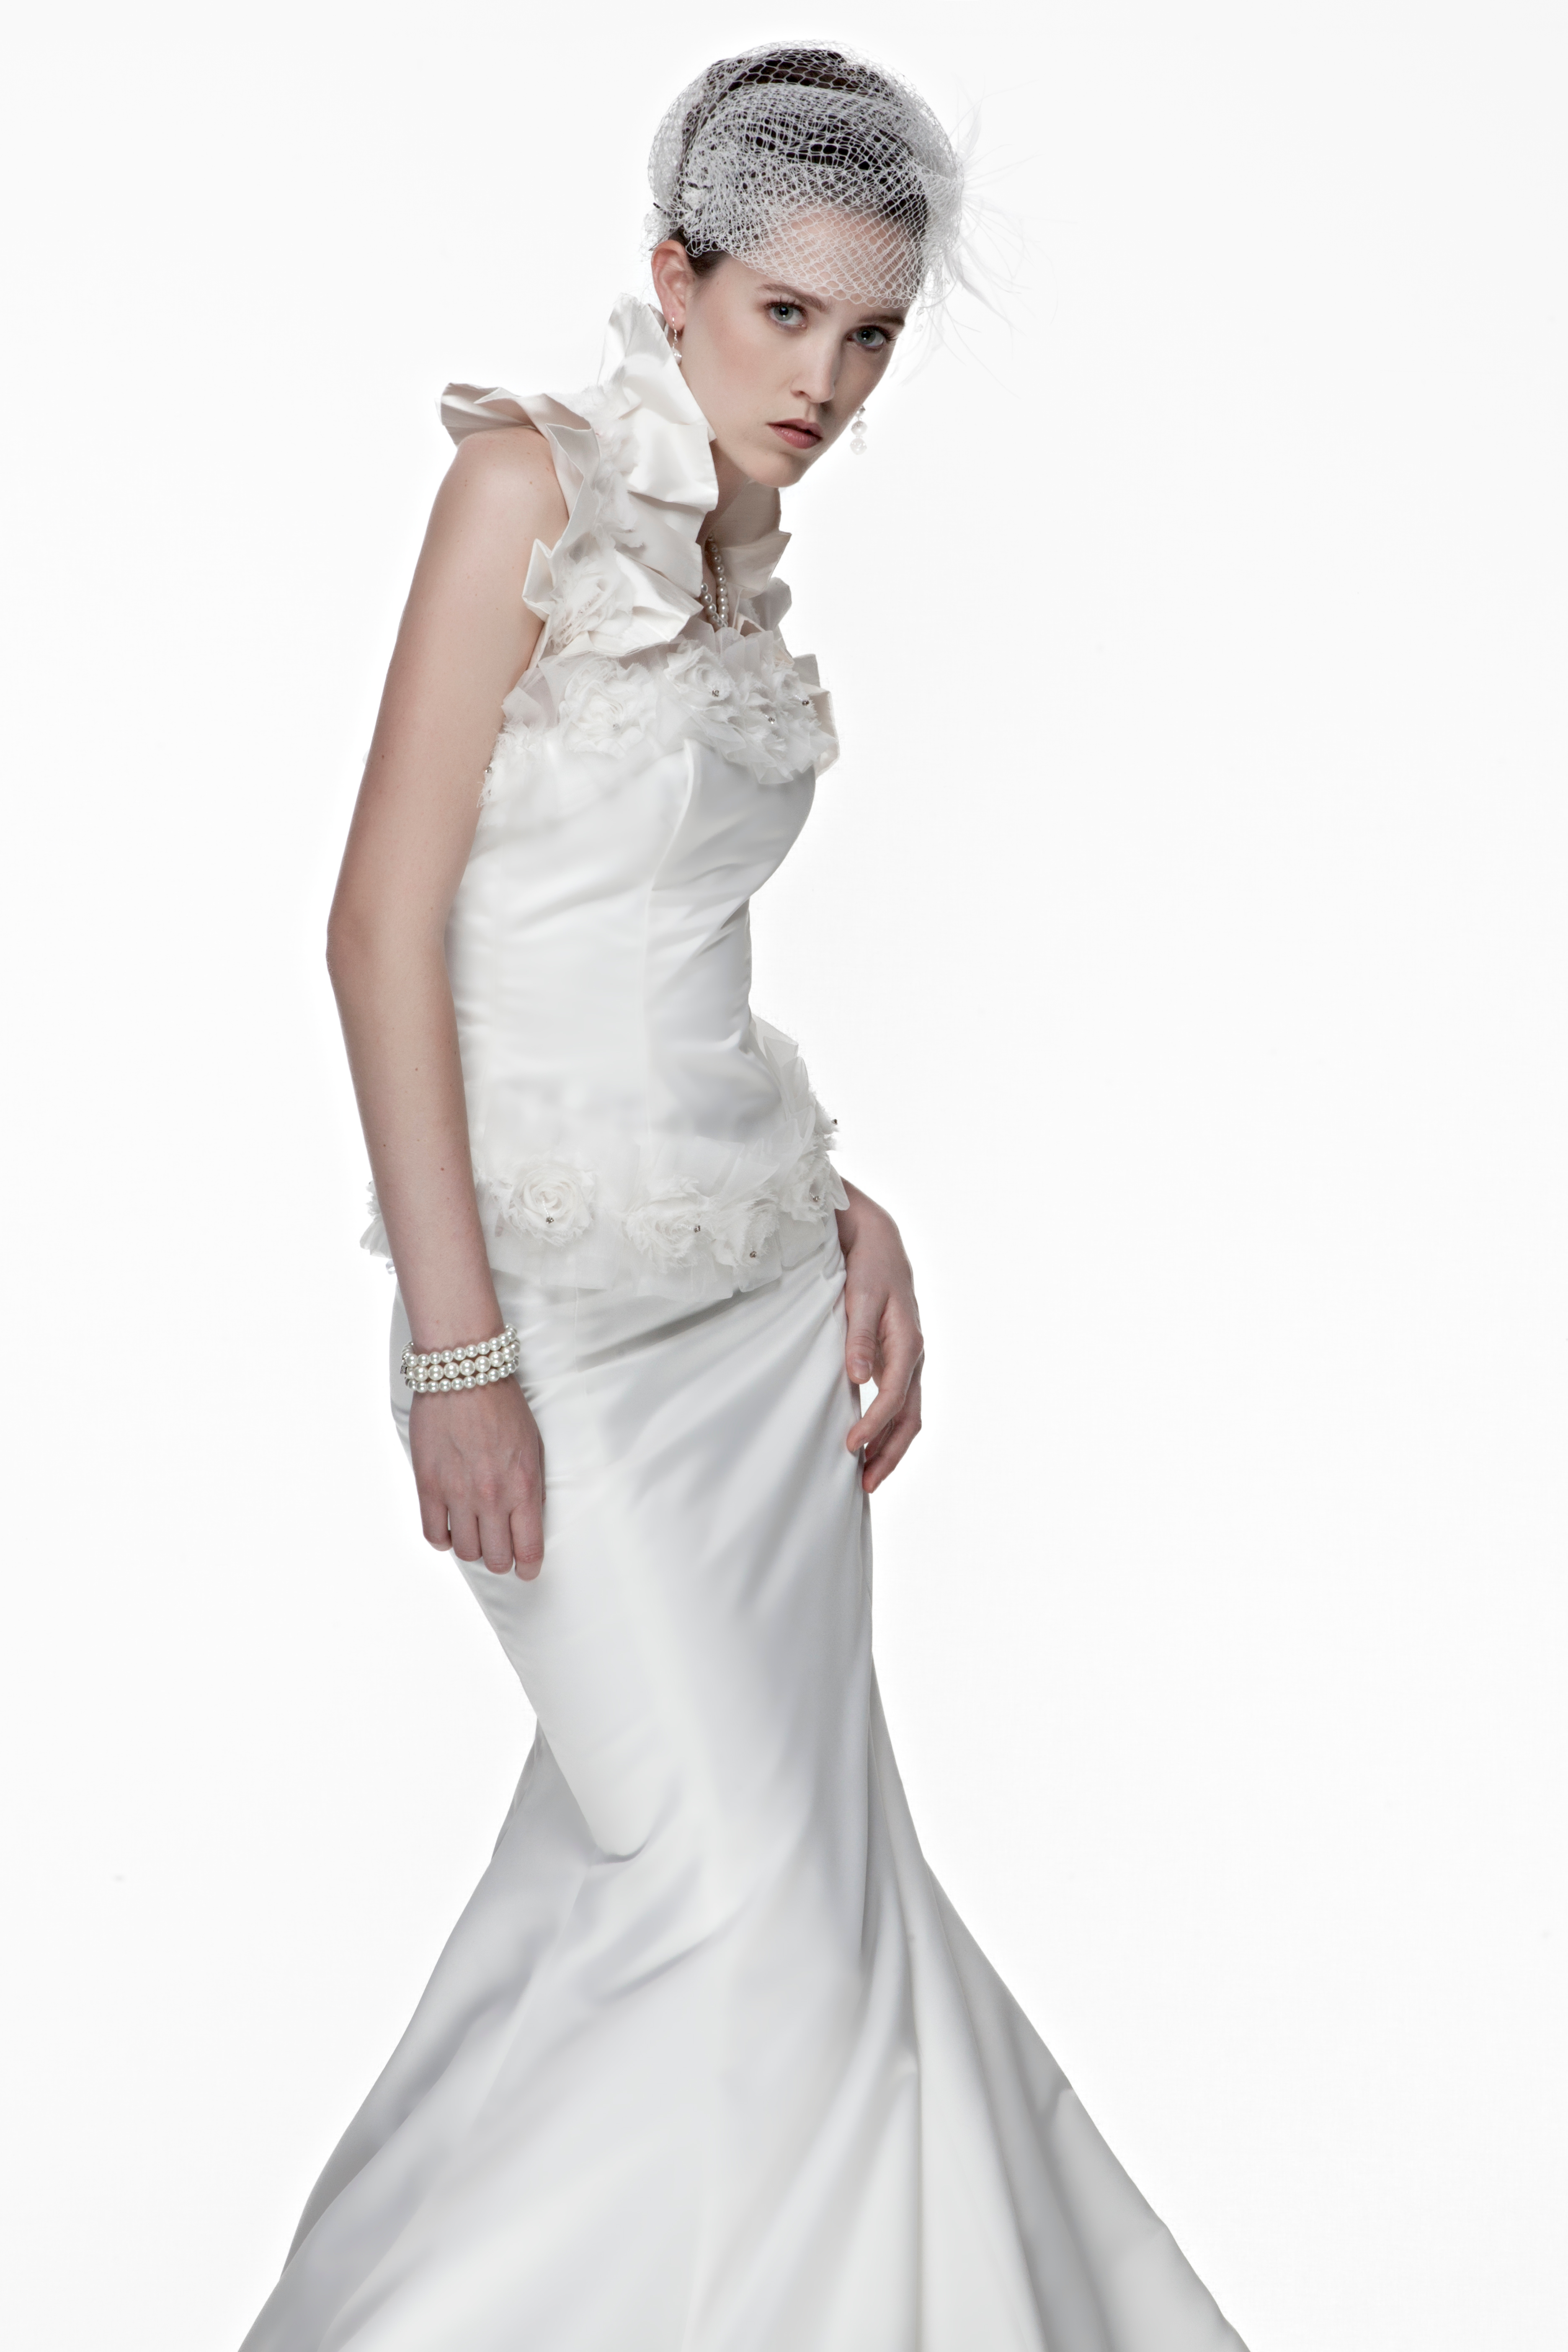 Wedding corset and skirt with organza ruffles